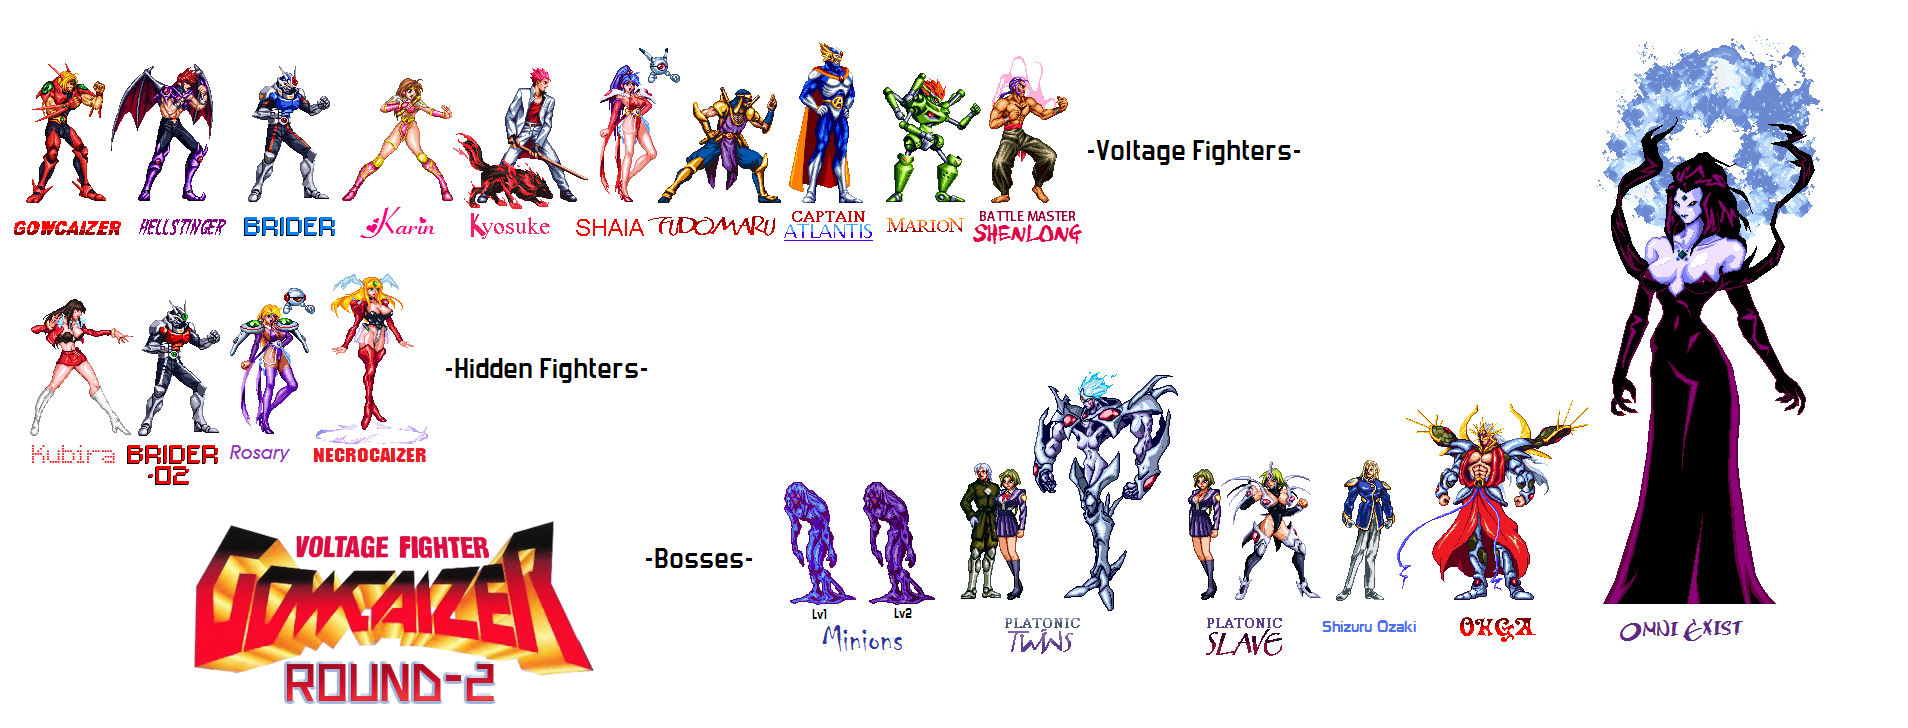 Voltage Fighter Gowcaizer Edited and Created Chars